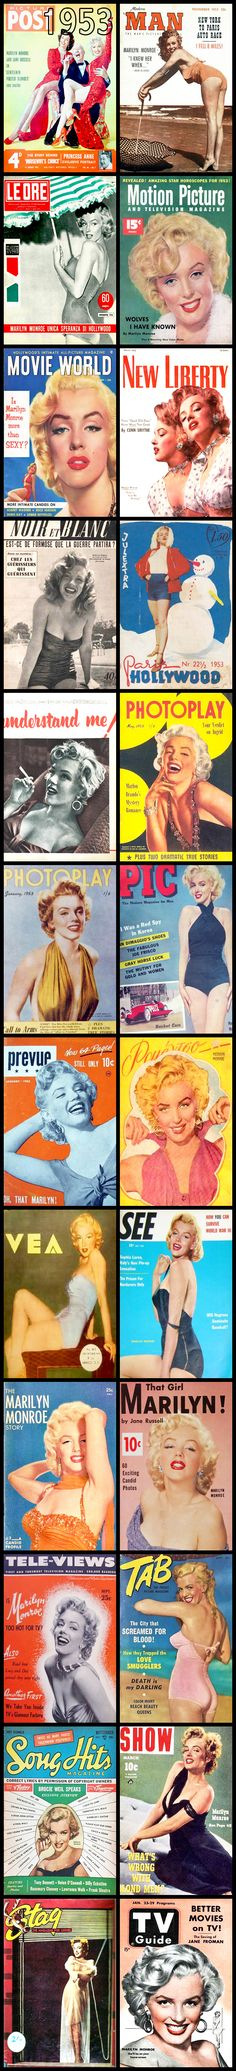 1953 magazine covers of Marilyn Monroe